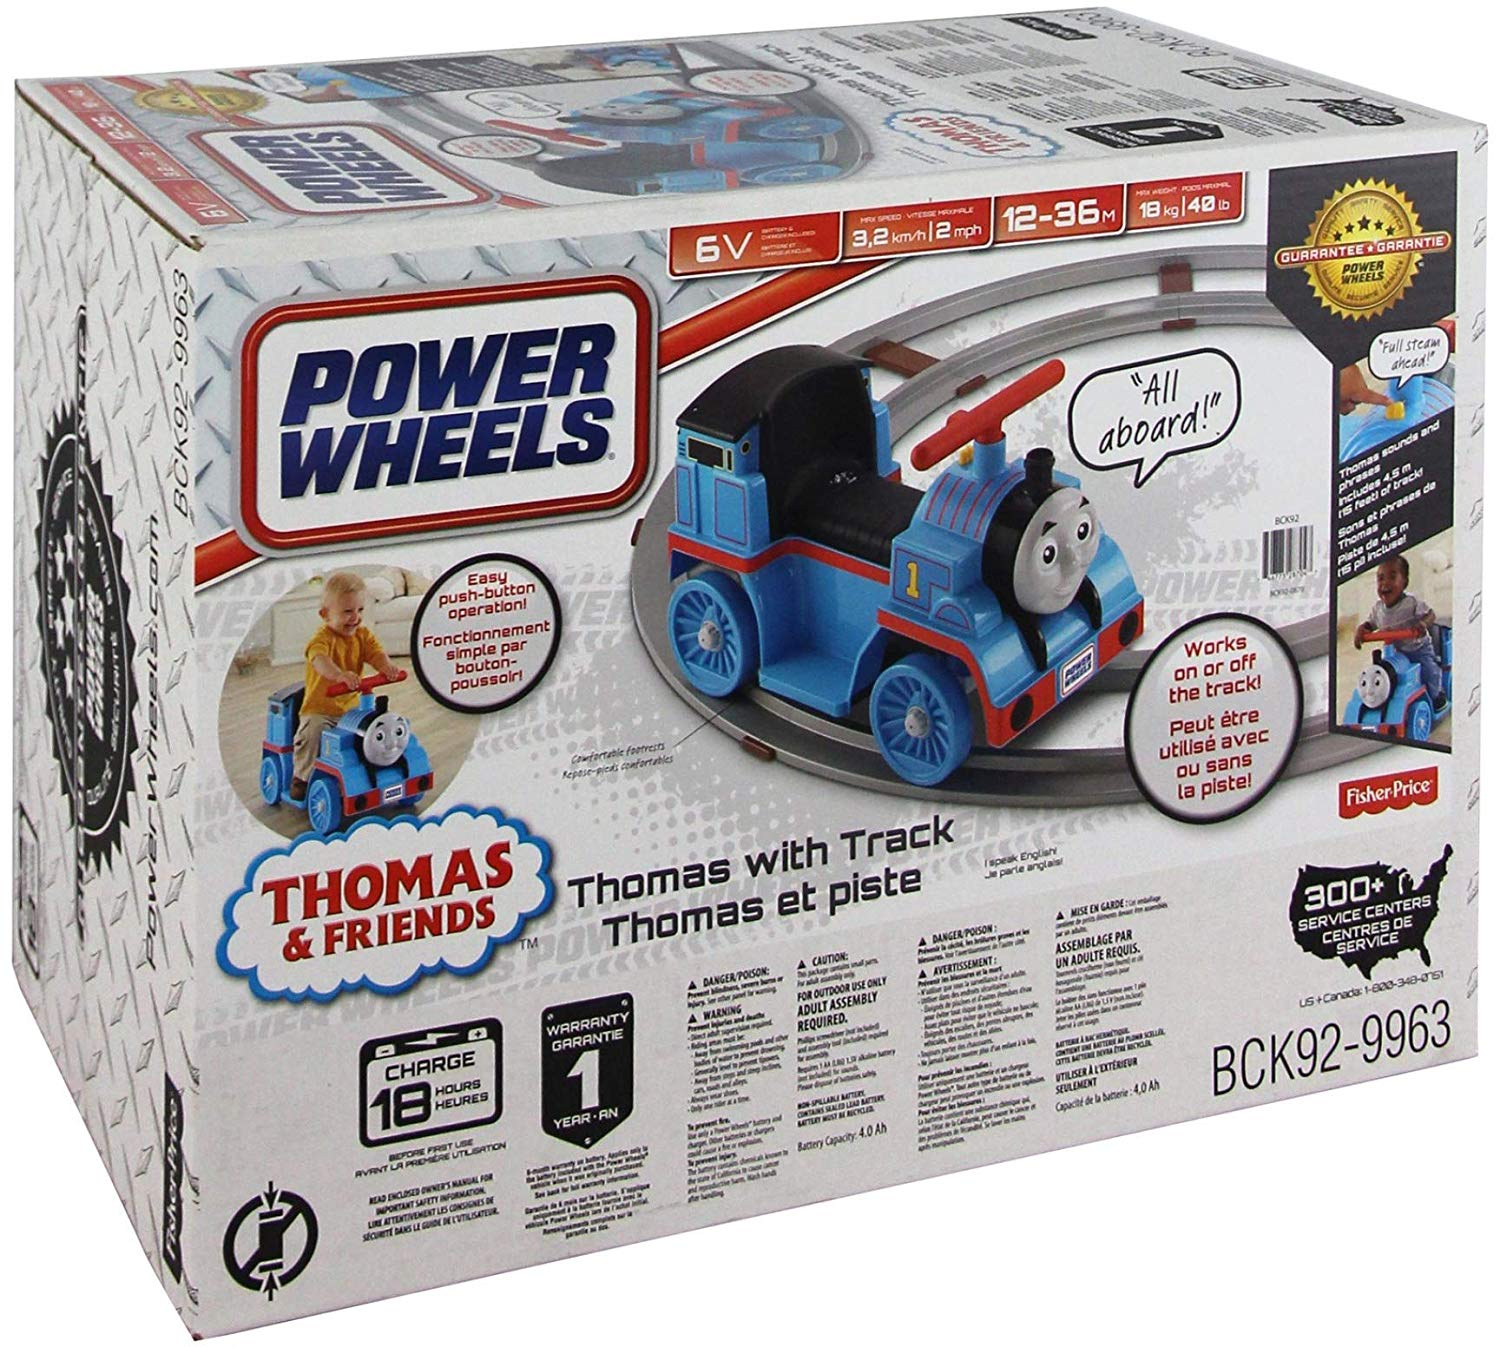 Power Wheels Thomas the Train and Friends with Track